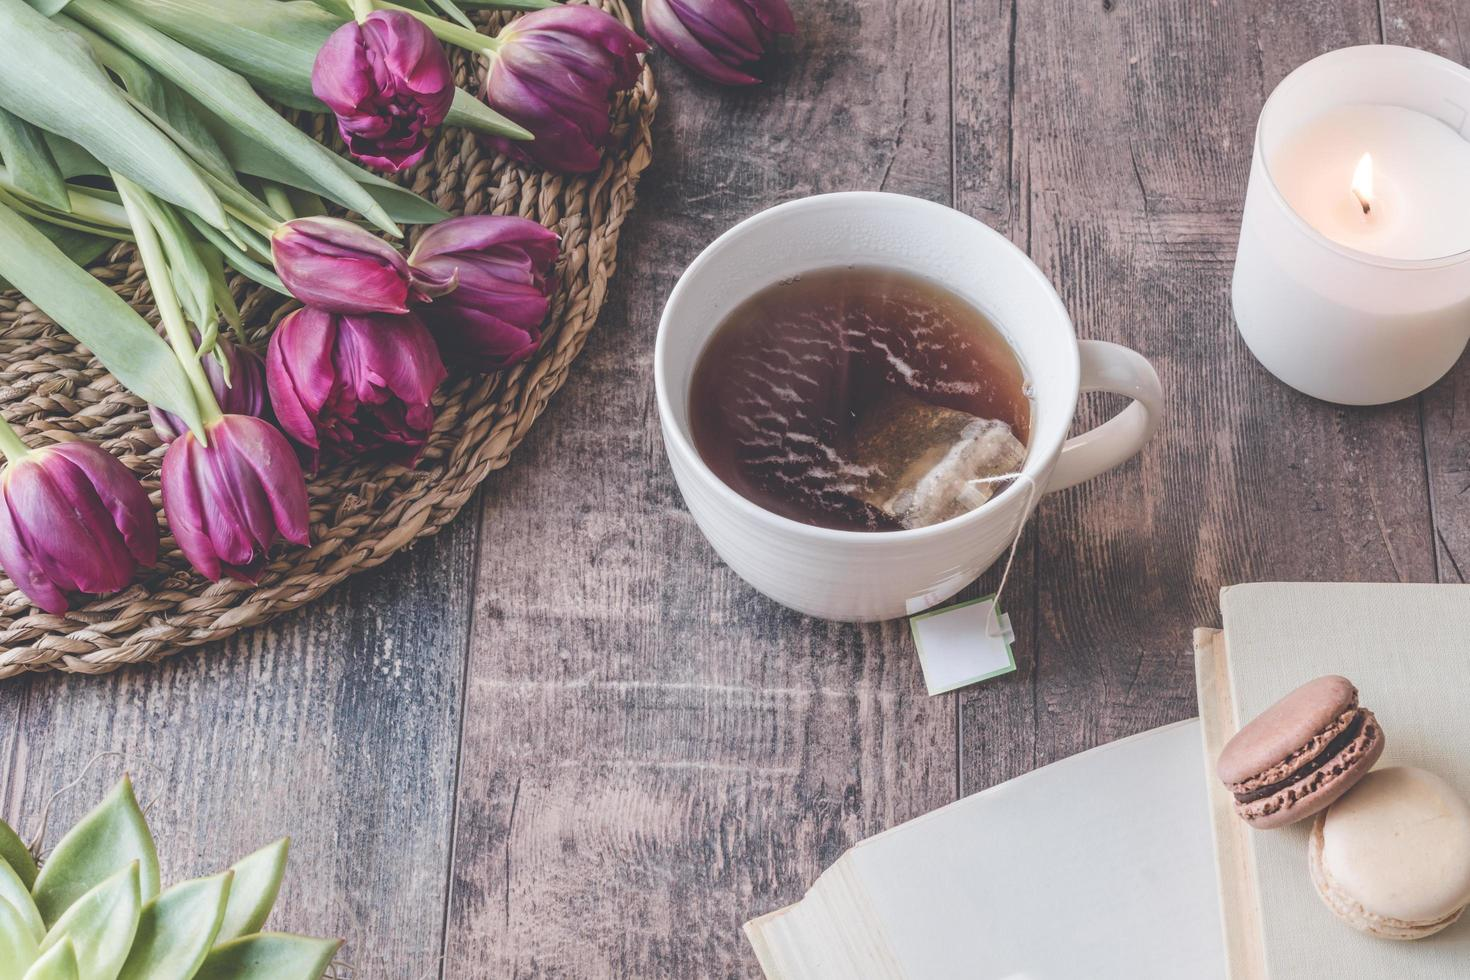 Lifestyle of tea, flowers and macarons  photo